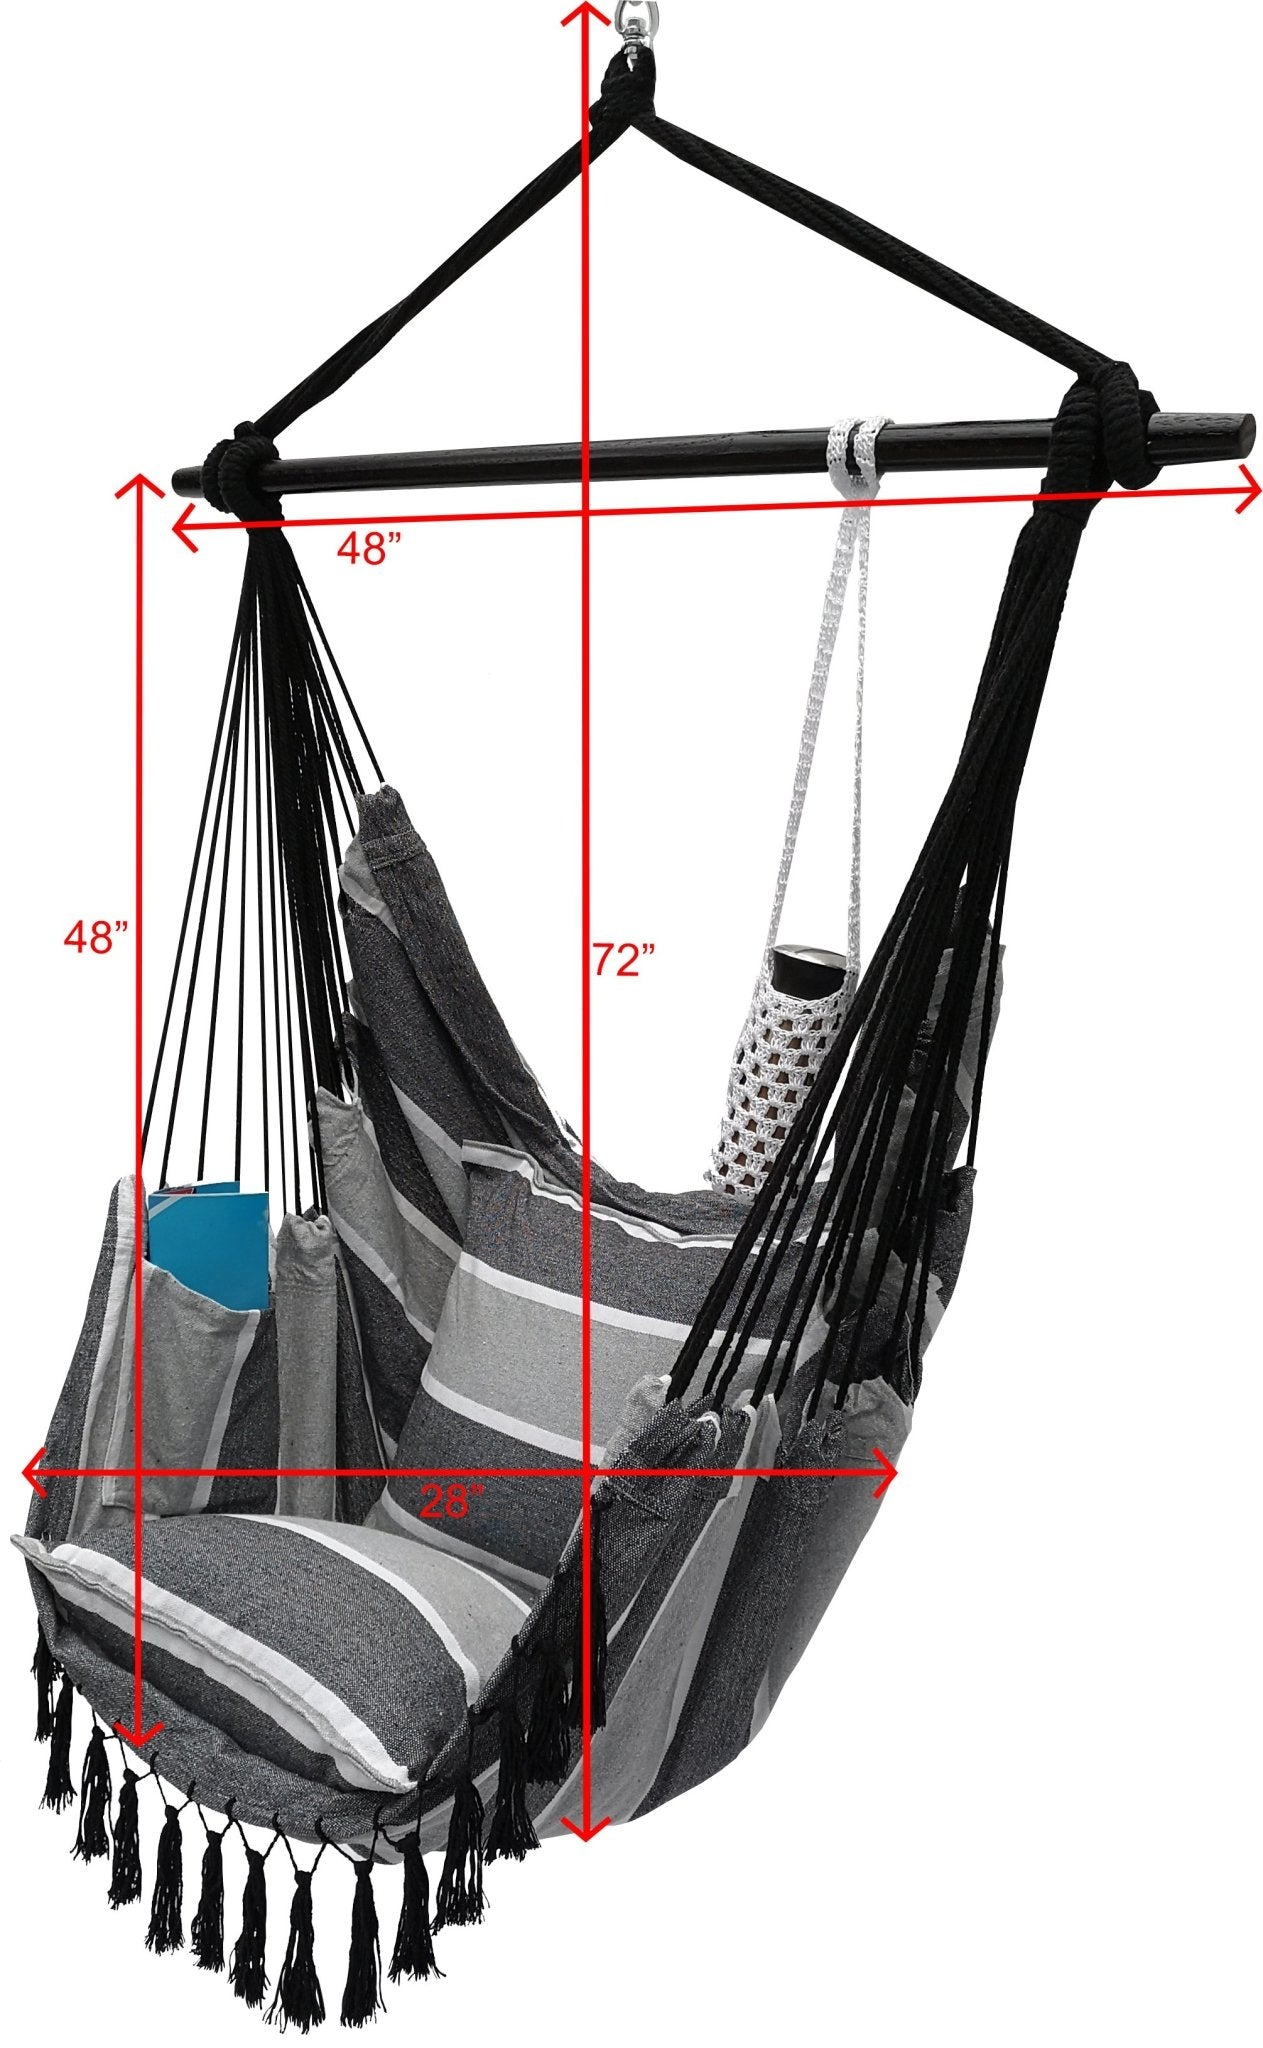 Hanging Rope Hammock Chair With 2 Pillows Carrying Bag And Hardware Project One Products